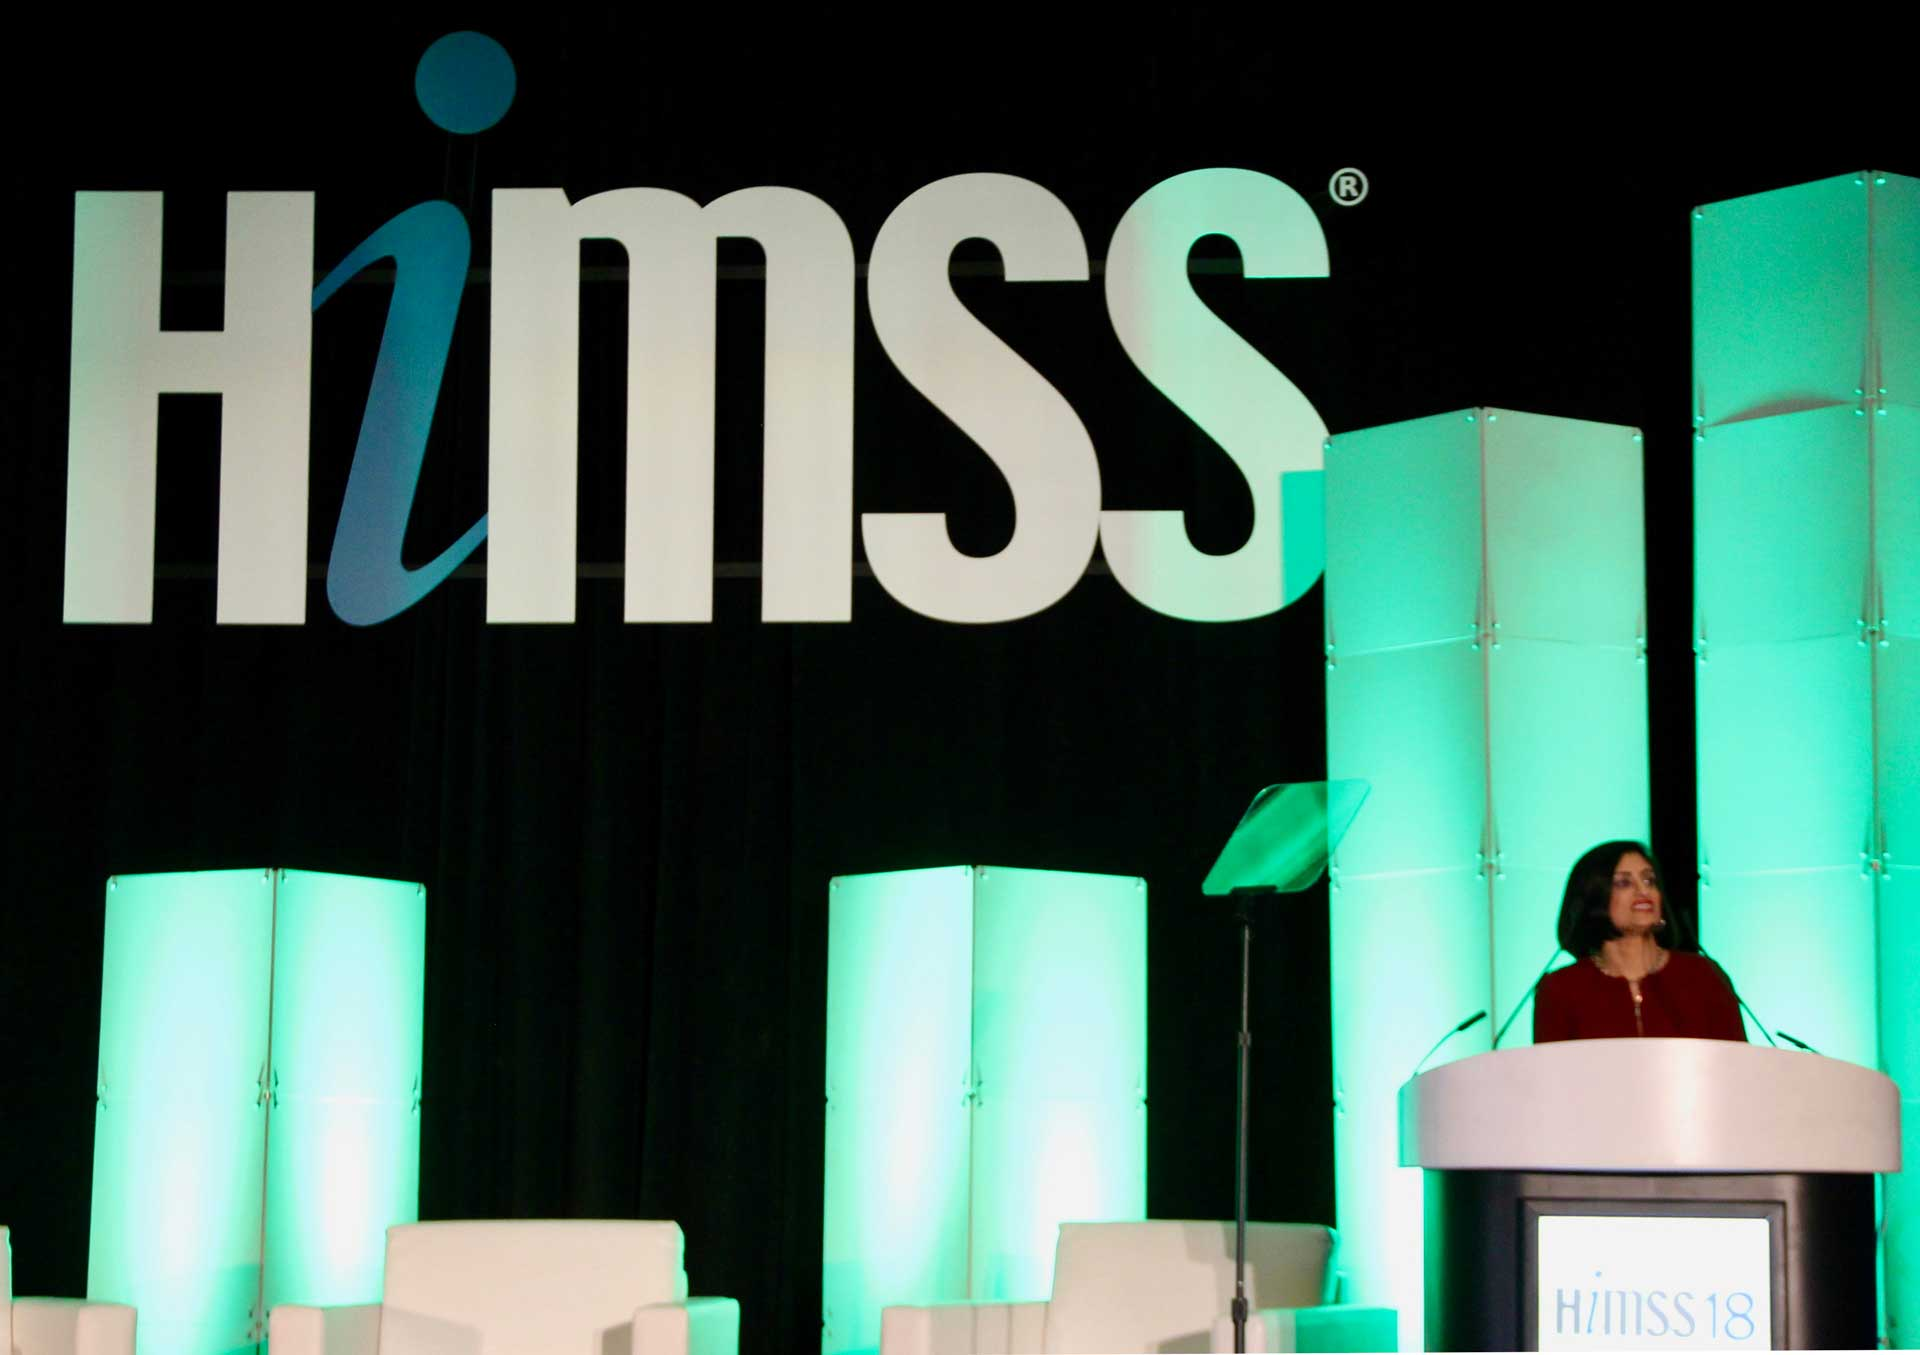 Photo of CMS Administrator Seema Verma speaking at HIMSS18.